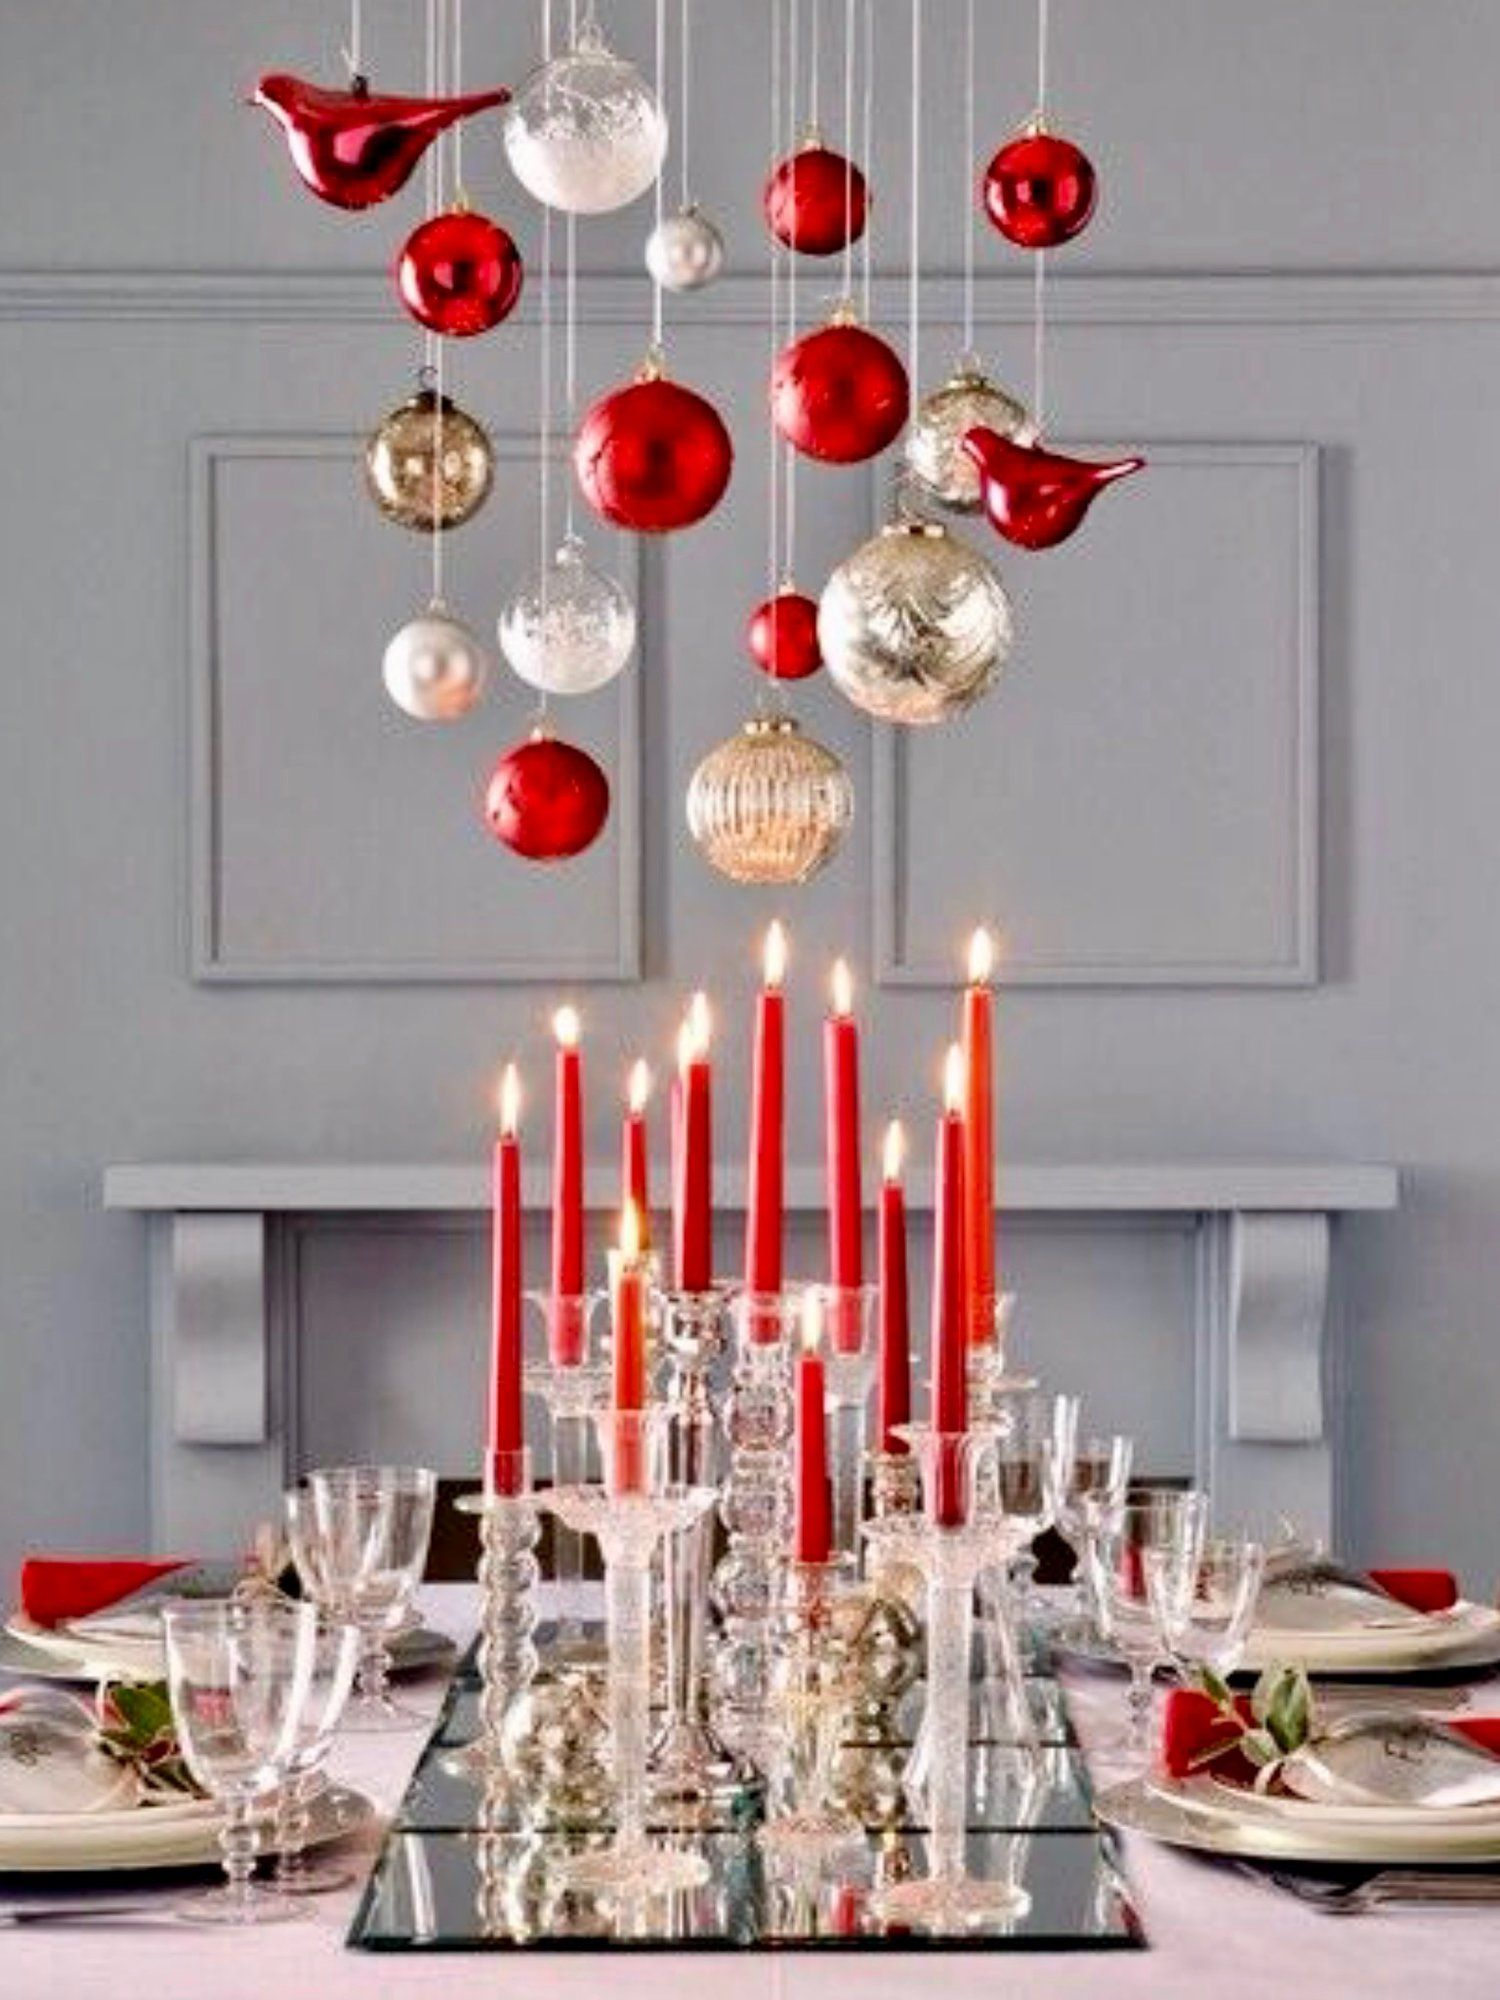 Pin By Style Estate On Christmas Pinterest Christmas Christmas